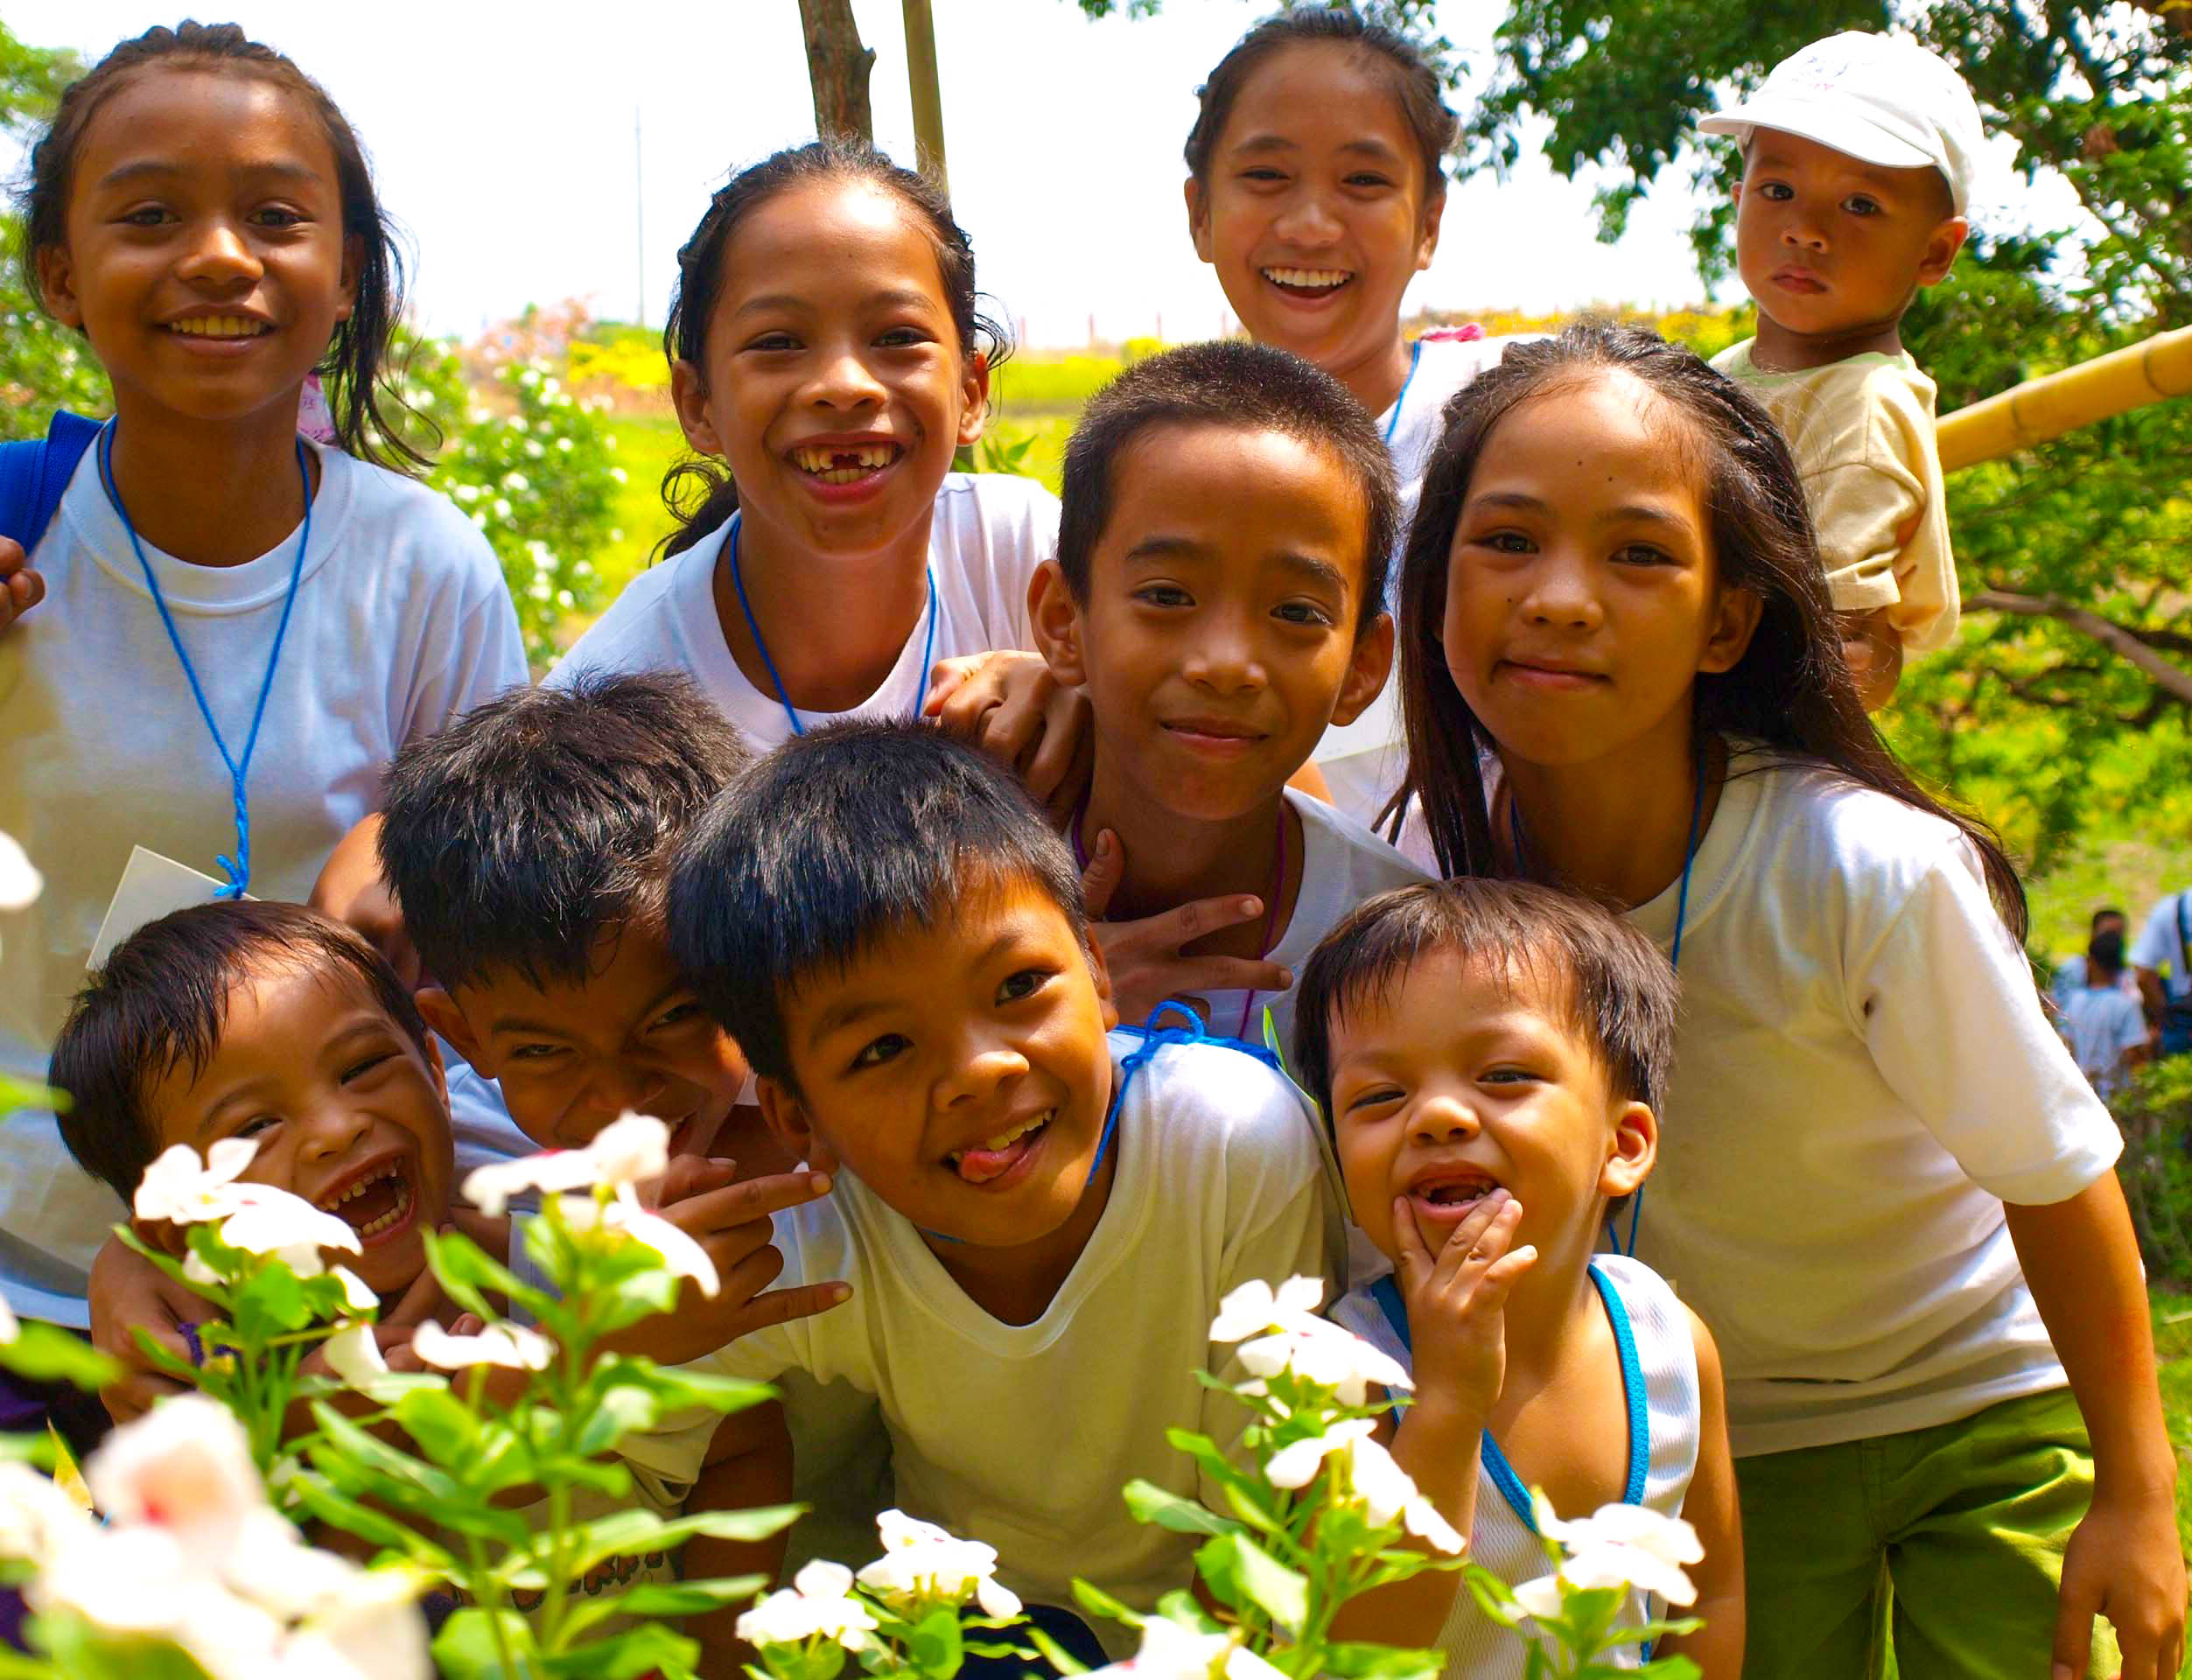 Filipino children smiling and laughing